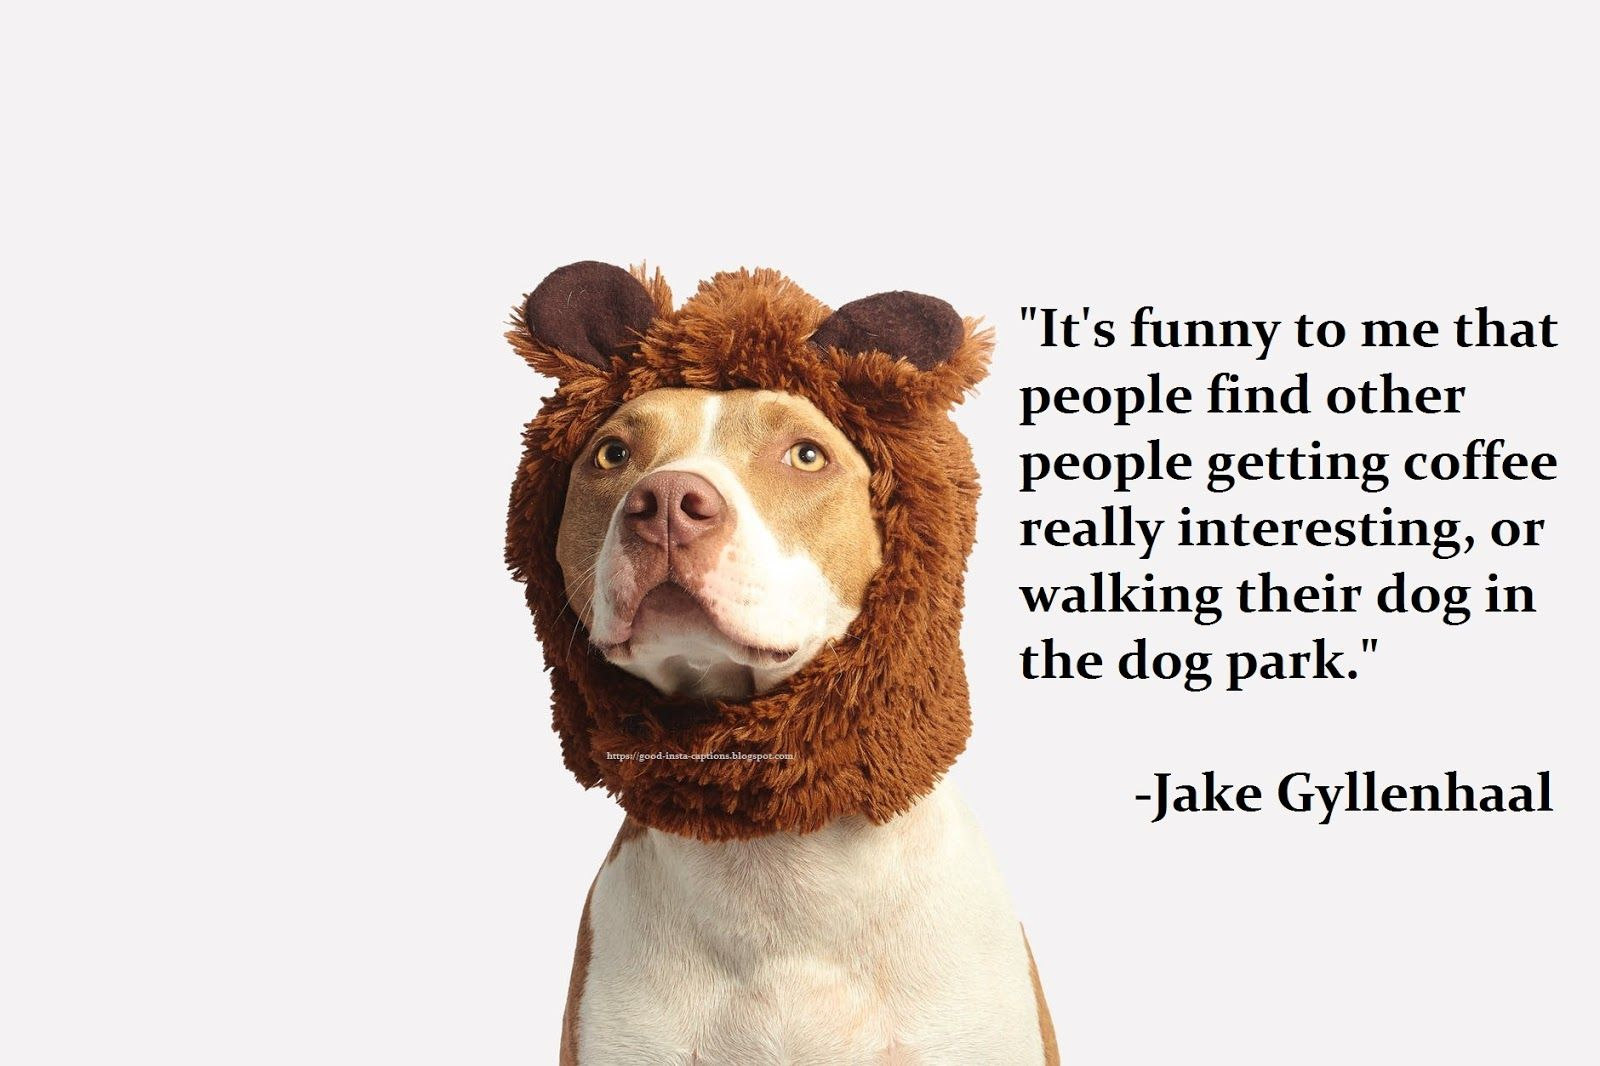 Funny Dog Quotes By Jake Gyllenhaal Dog Quotes Funny Dog Instagram Captions Dog Quotes